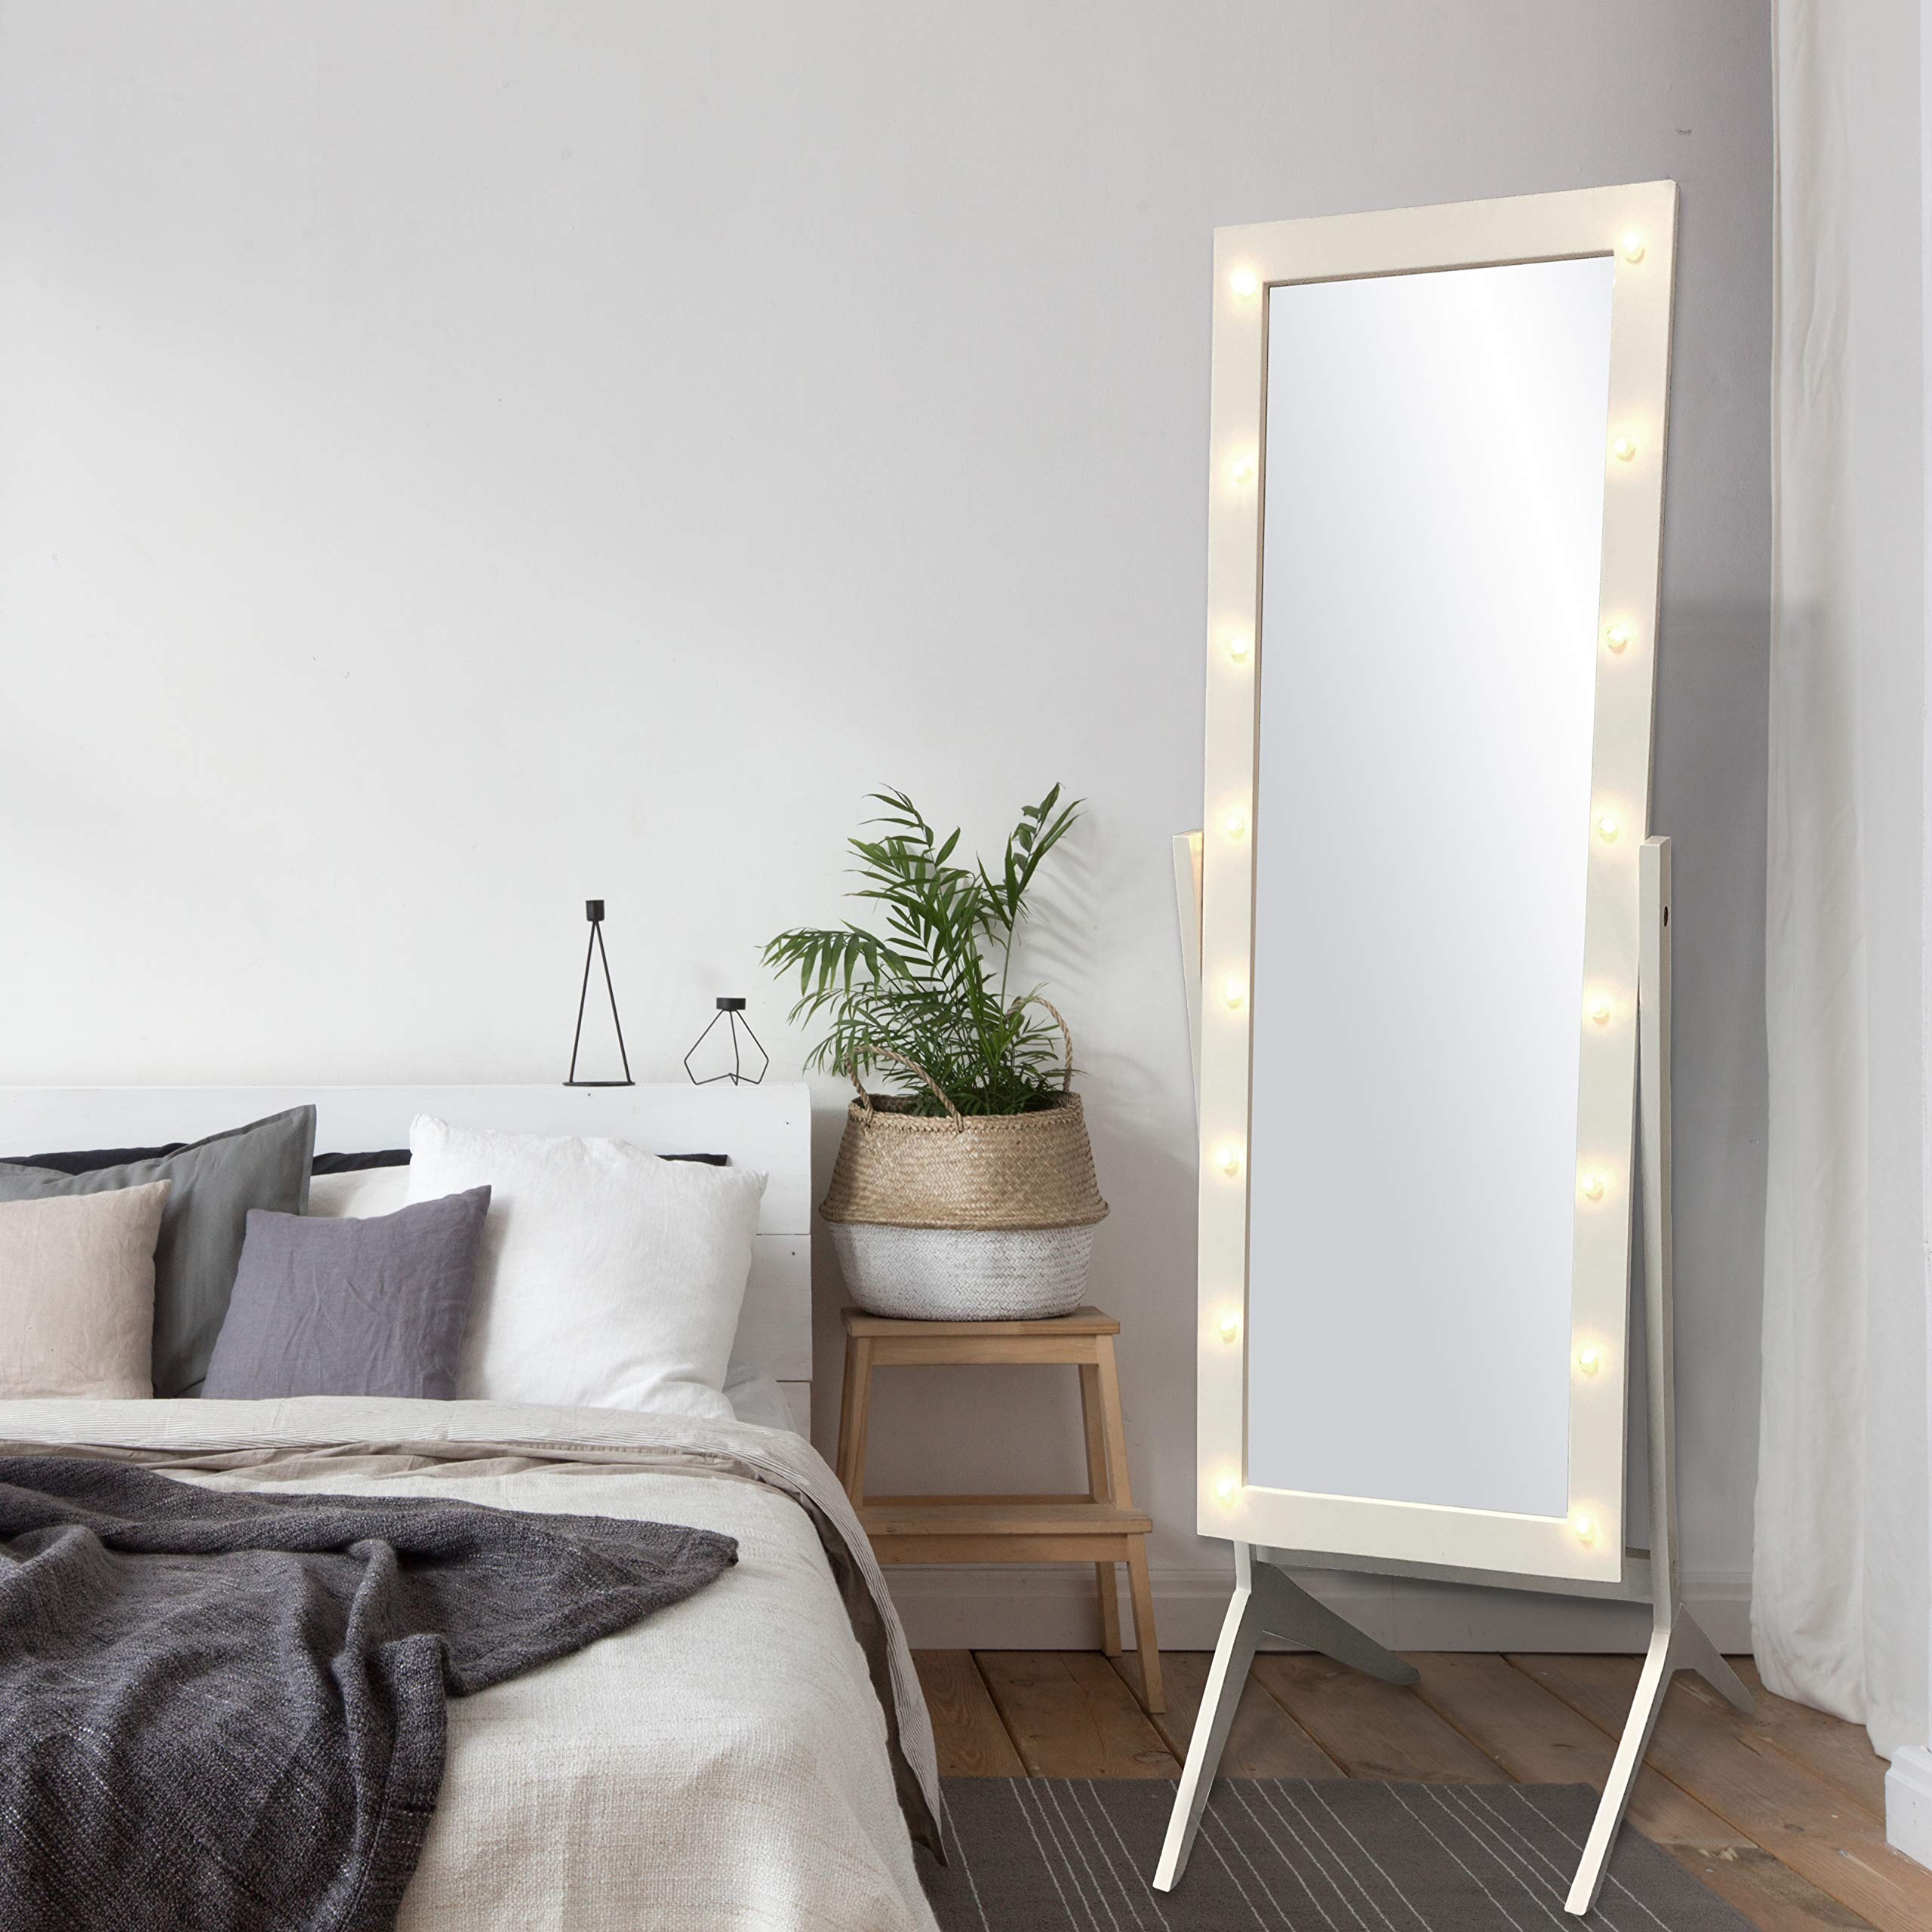 eHomeProducts White Finish LED Lights Wooden Cheval Bedroom Floor Mirror Stand Hollywood Style Makeup Mirror by eHomeProducts